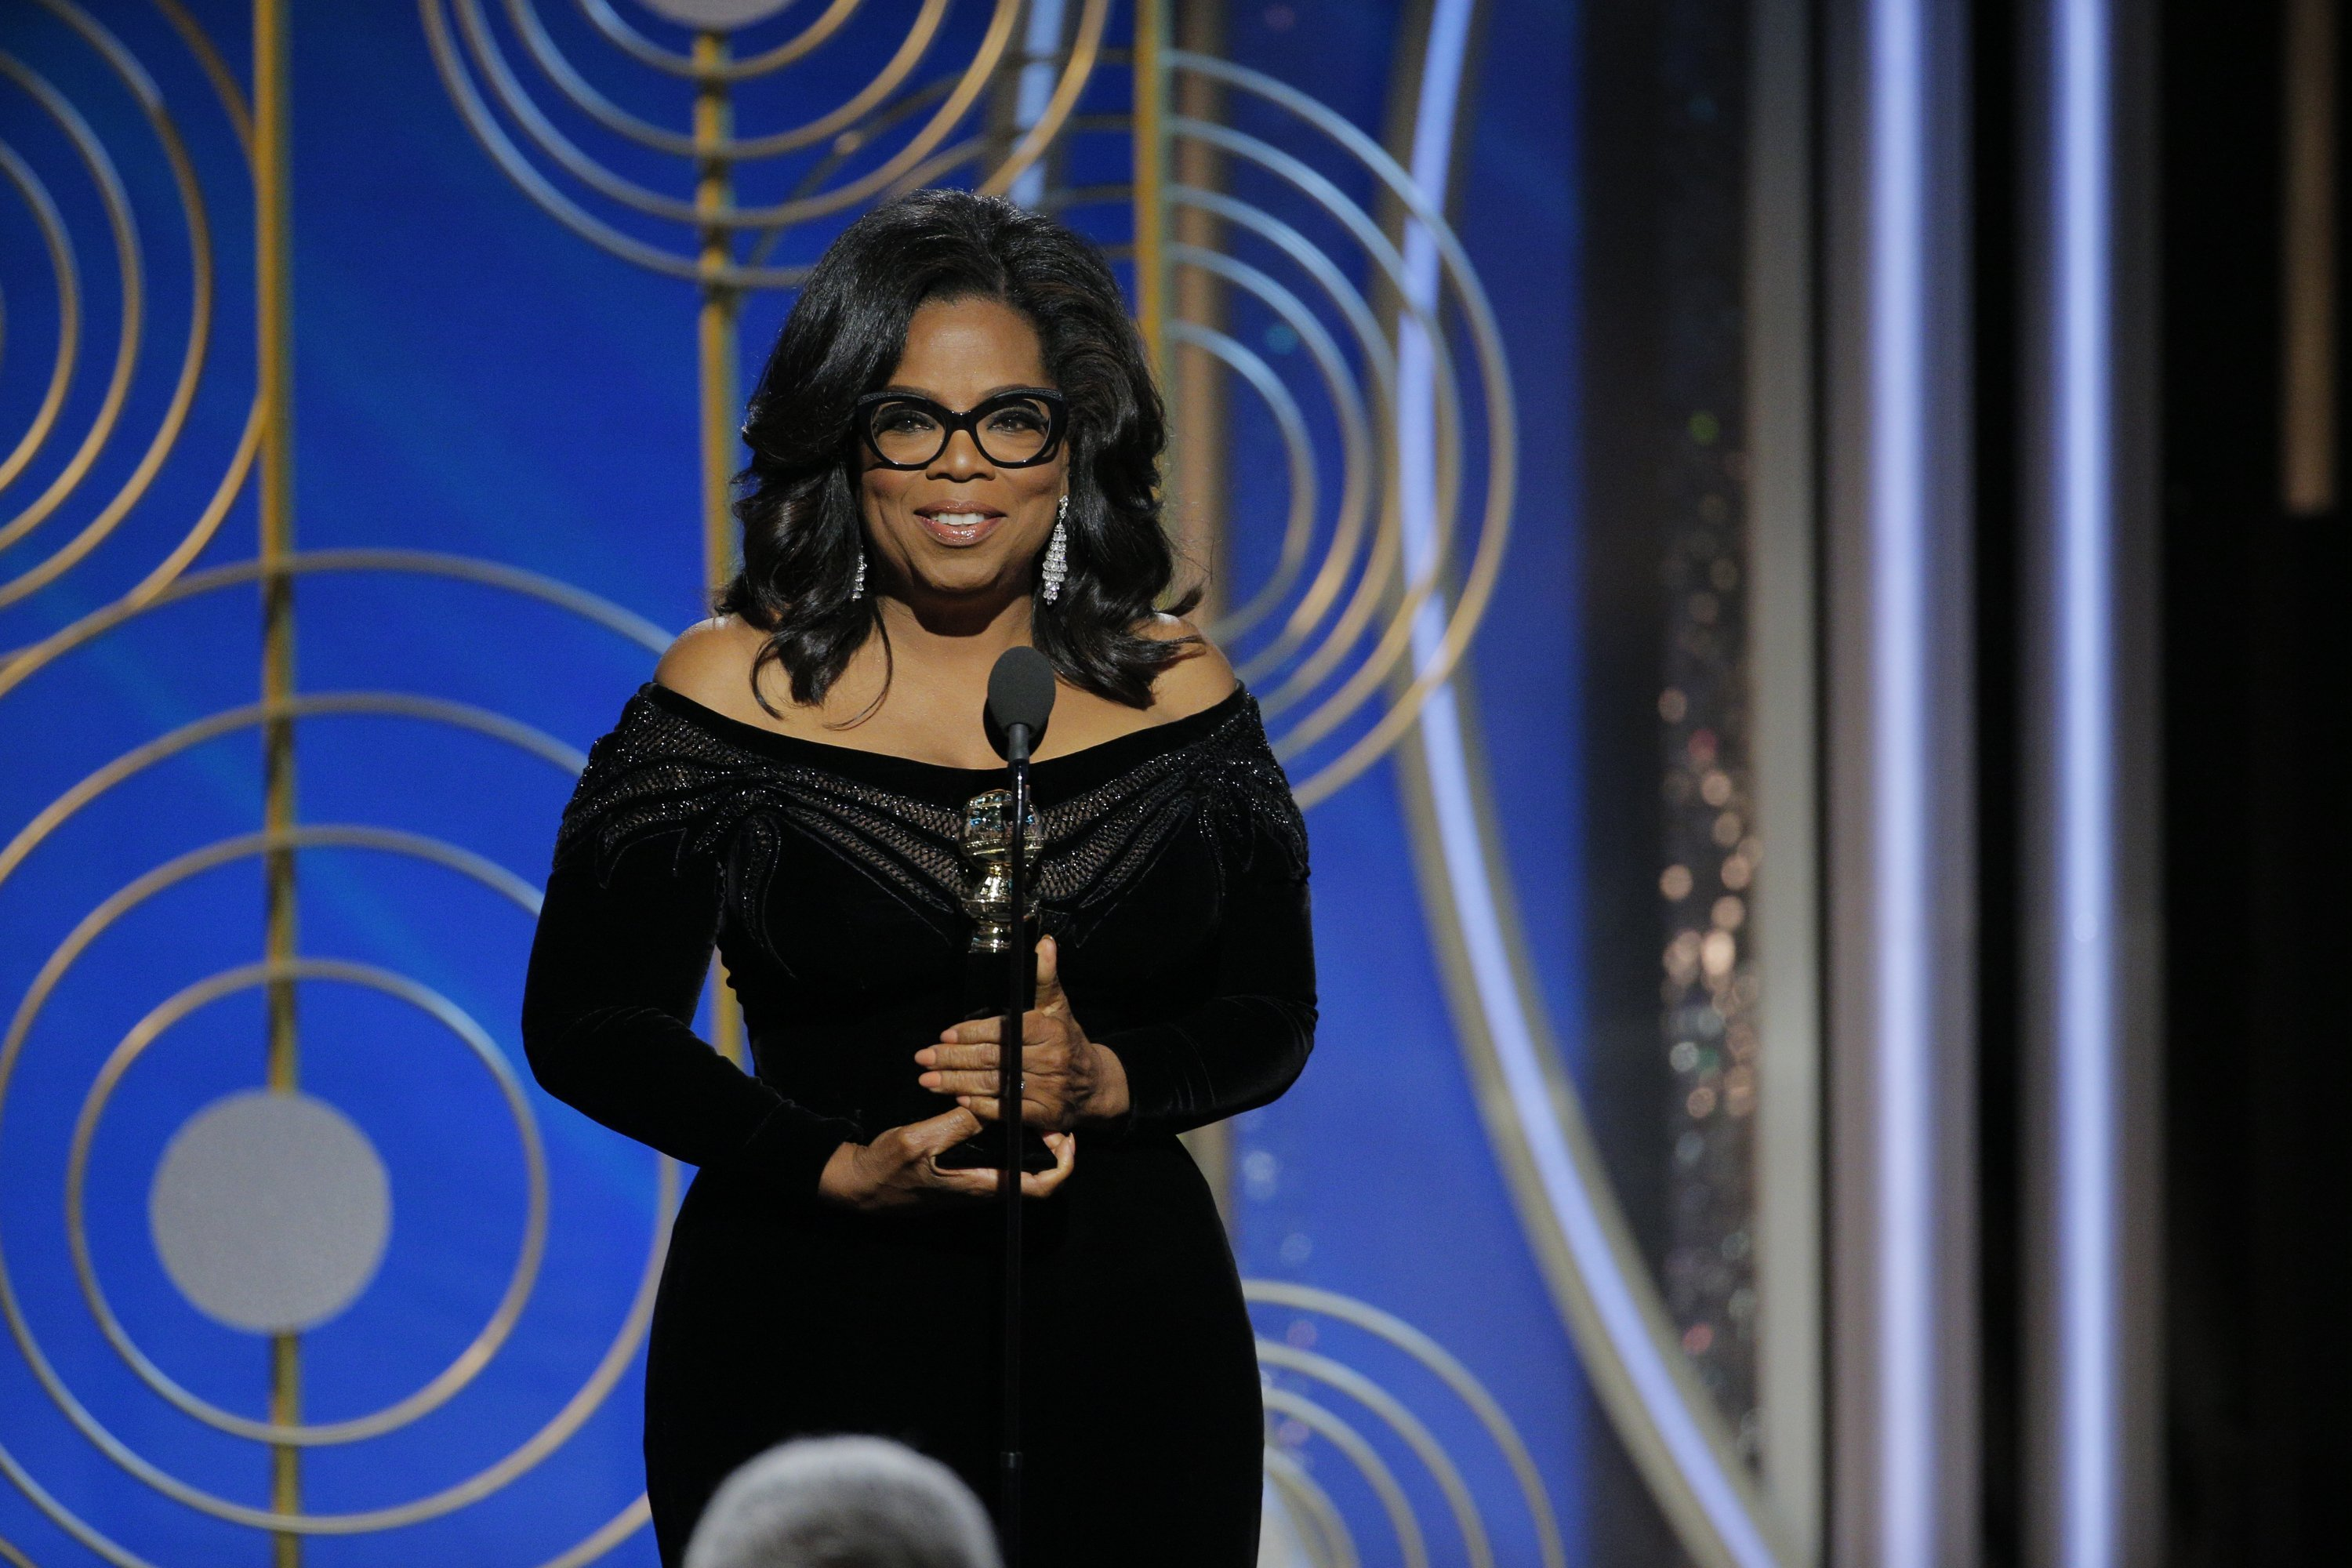 Could Oprah win? The big question about a presidential run